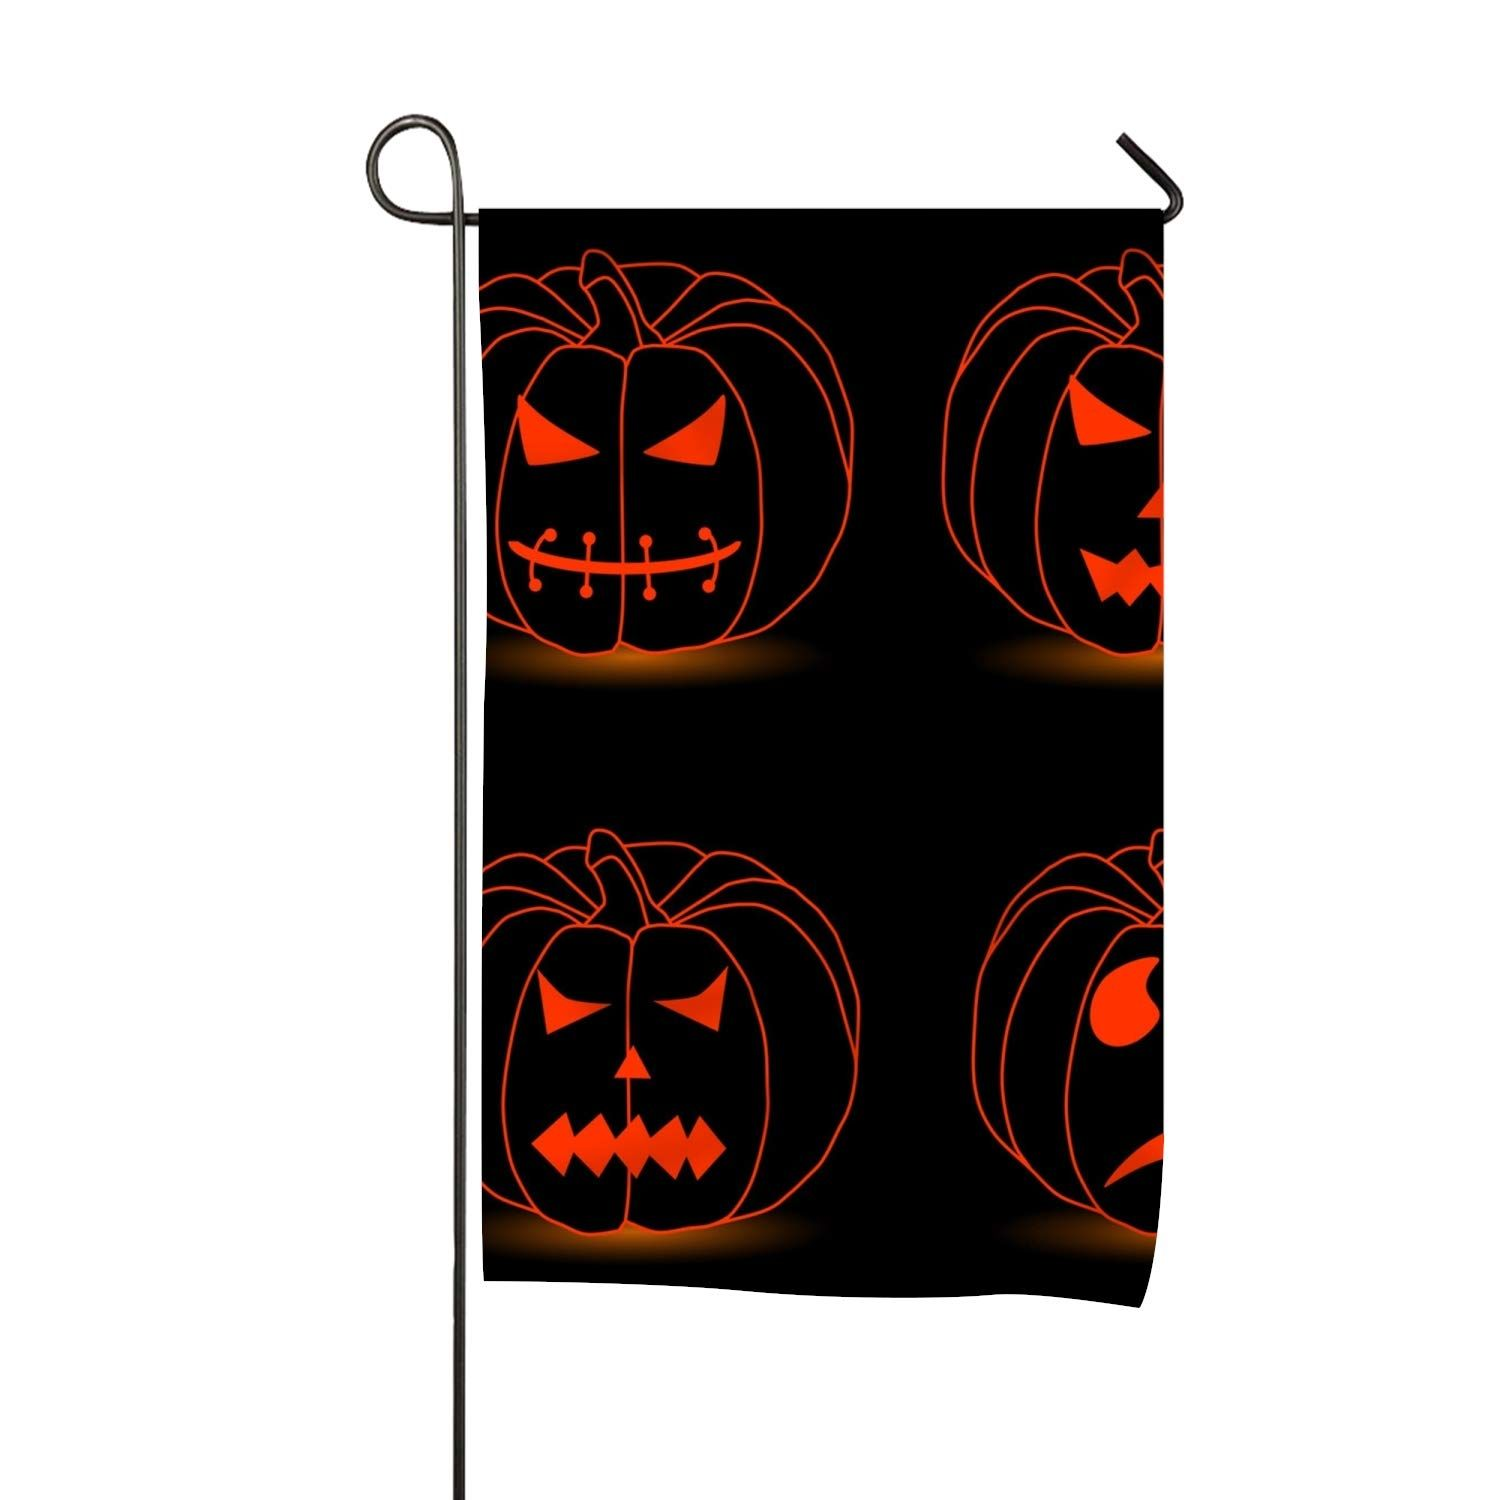 halloween house decor : niaocpwy halloween garden flag holiday